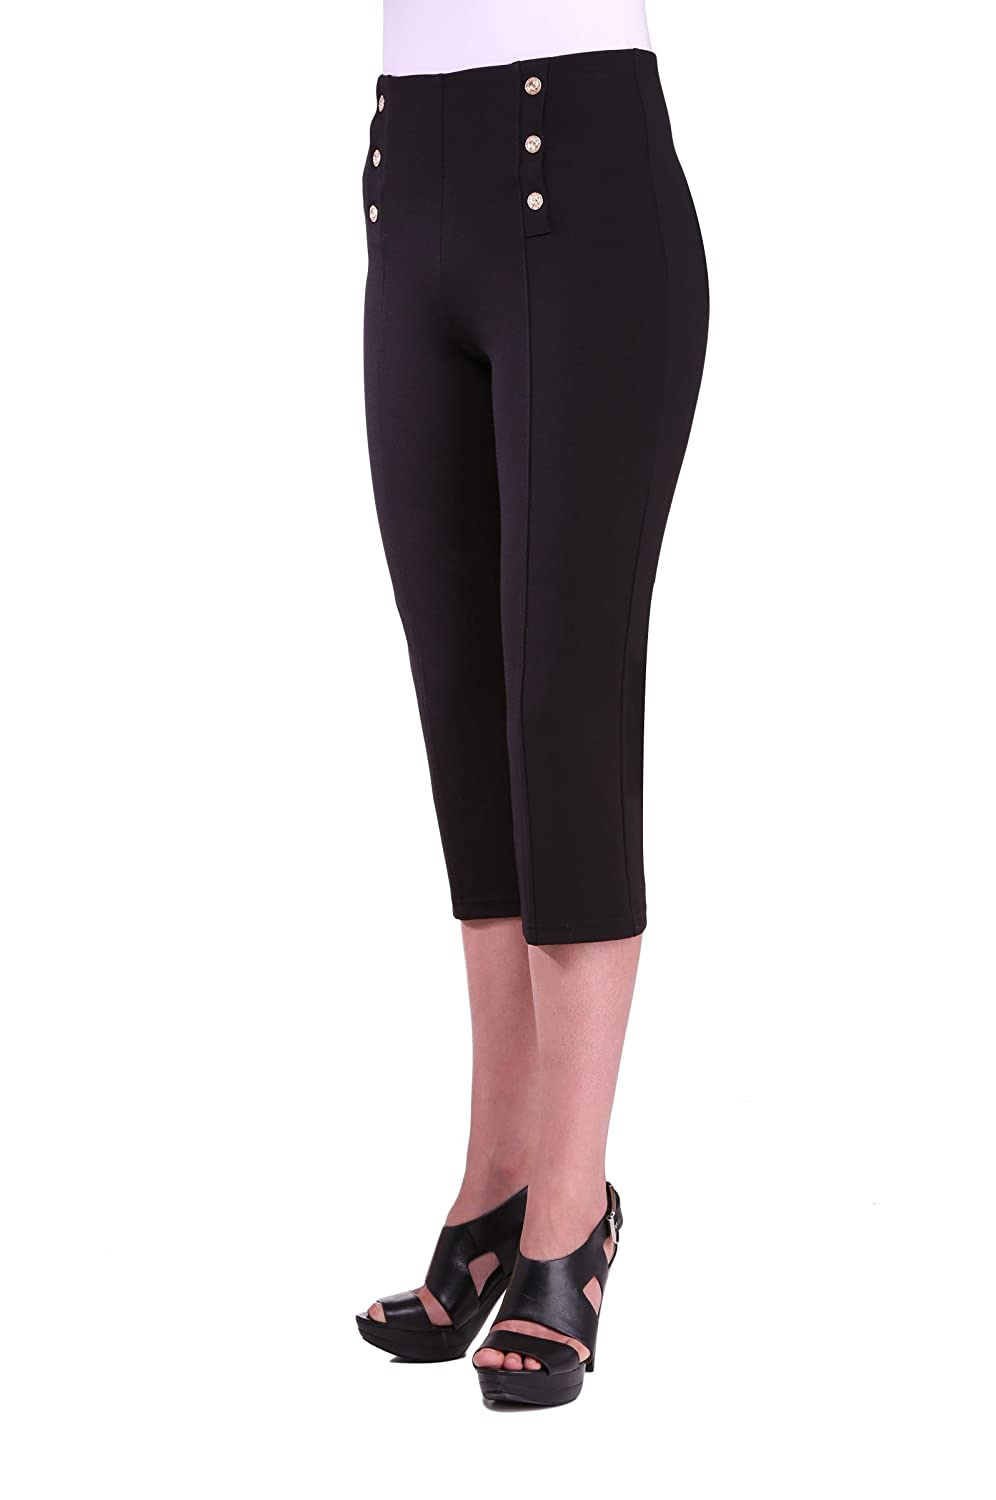 Petite Women's Nautical Slimming Contour Black Capri Pants